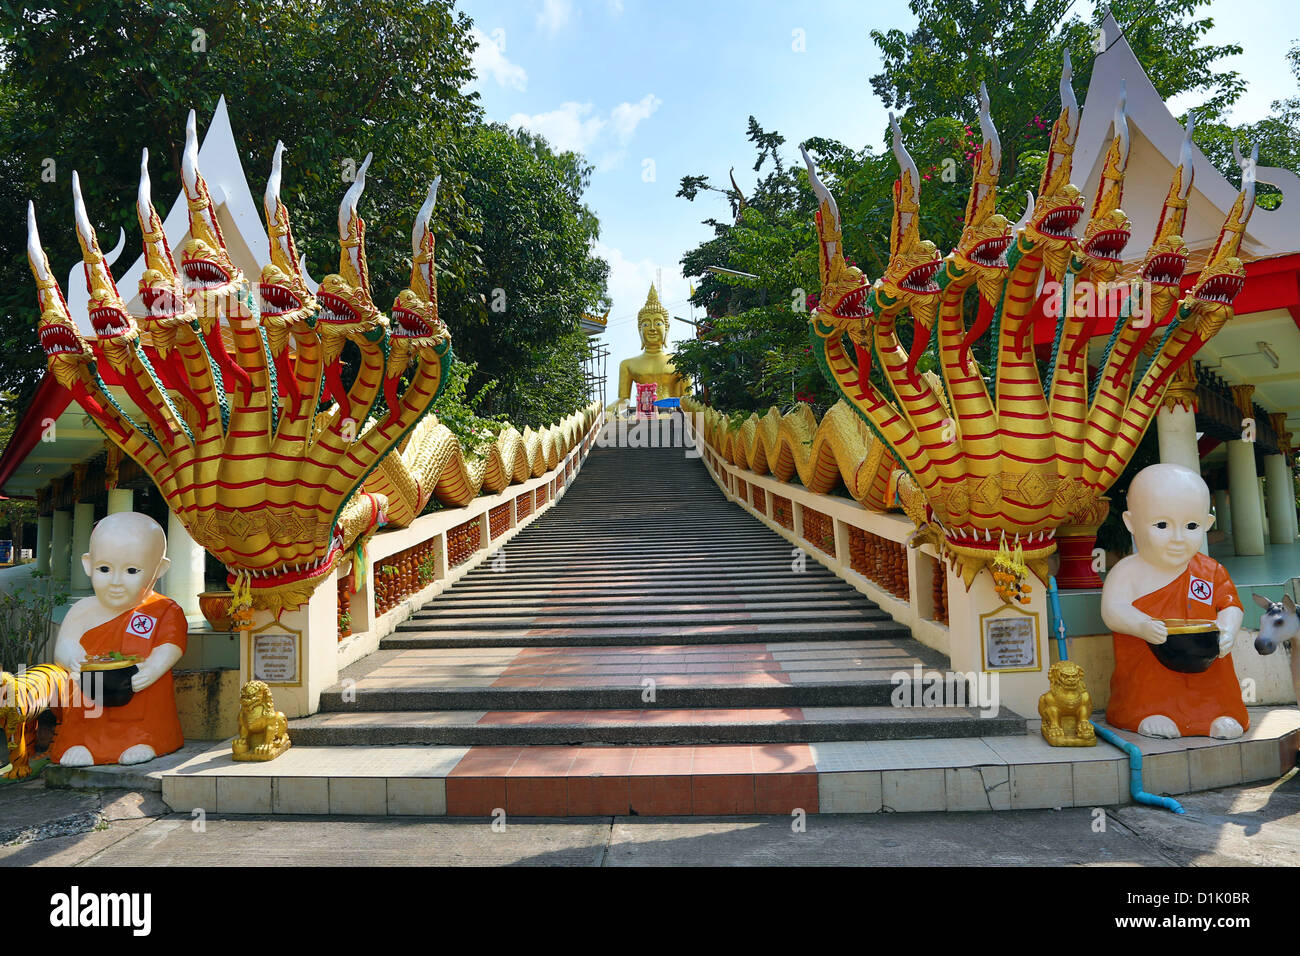 Big Buddha statue at Wat Khao Phra Bat in Pattaya, Thailand Stock Photo, Roya...